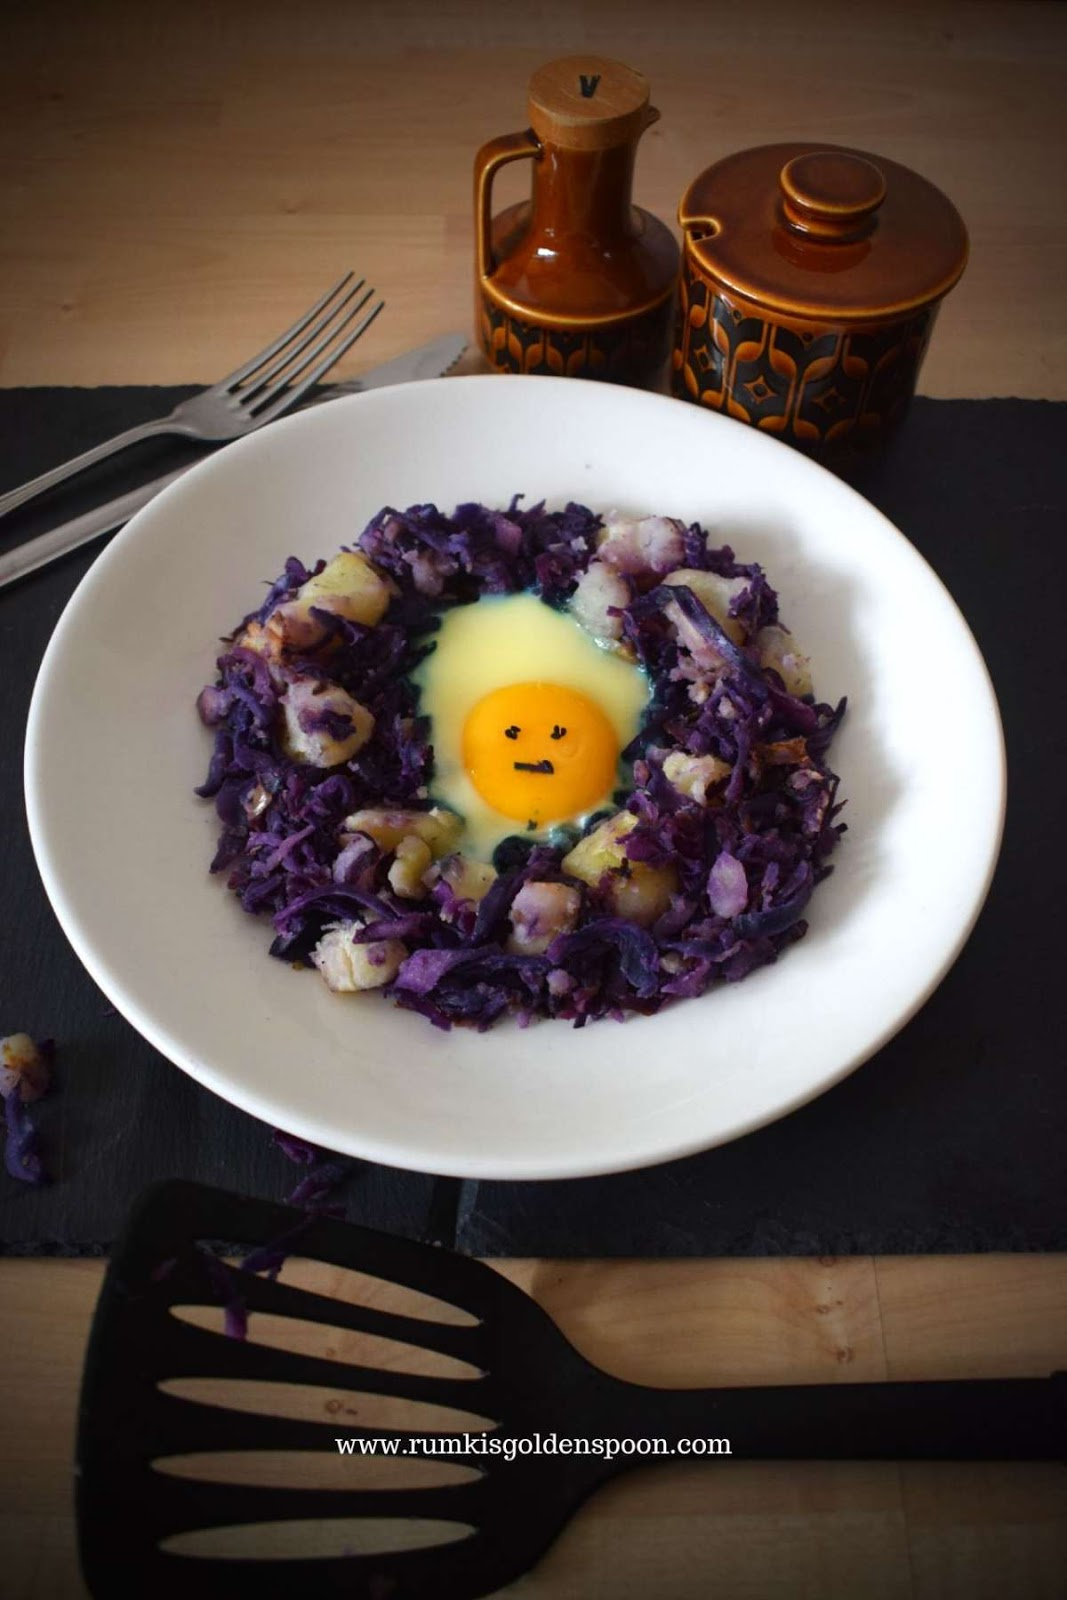 Red Cabbage recipes Indian, Red Cabbage recipes vegan, how to cook red cabbage, braised red cabbage recipe, braised red cabbage, benefits of red cabbage, Halloween recipes, red cabbage recipe, red cabbage recipes, red cabbage recipe simple, red cabbage recipe braised, red cabbage recipe healthy, Rumki's Golden Spoon